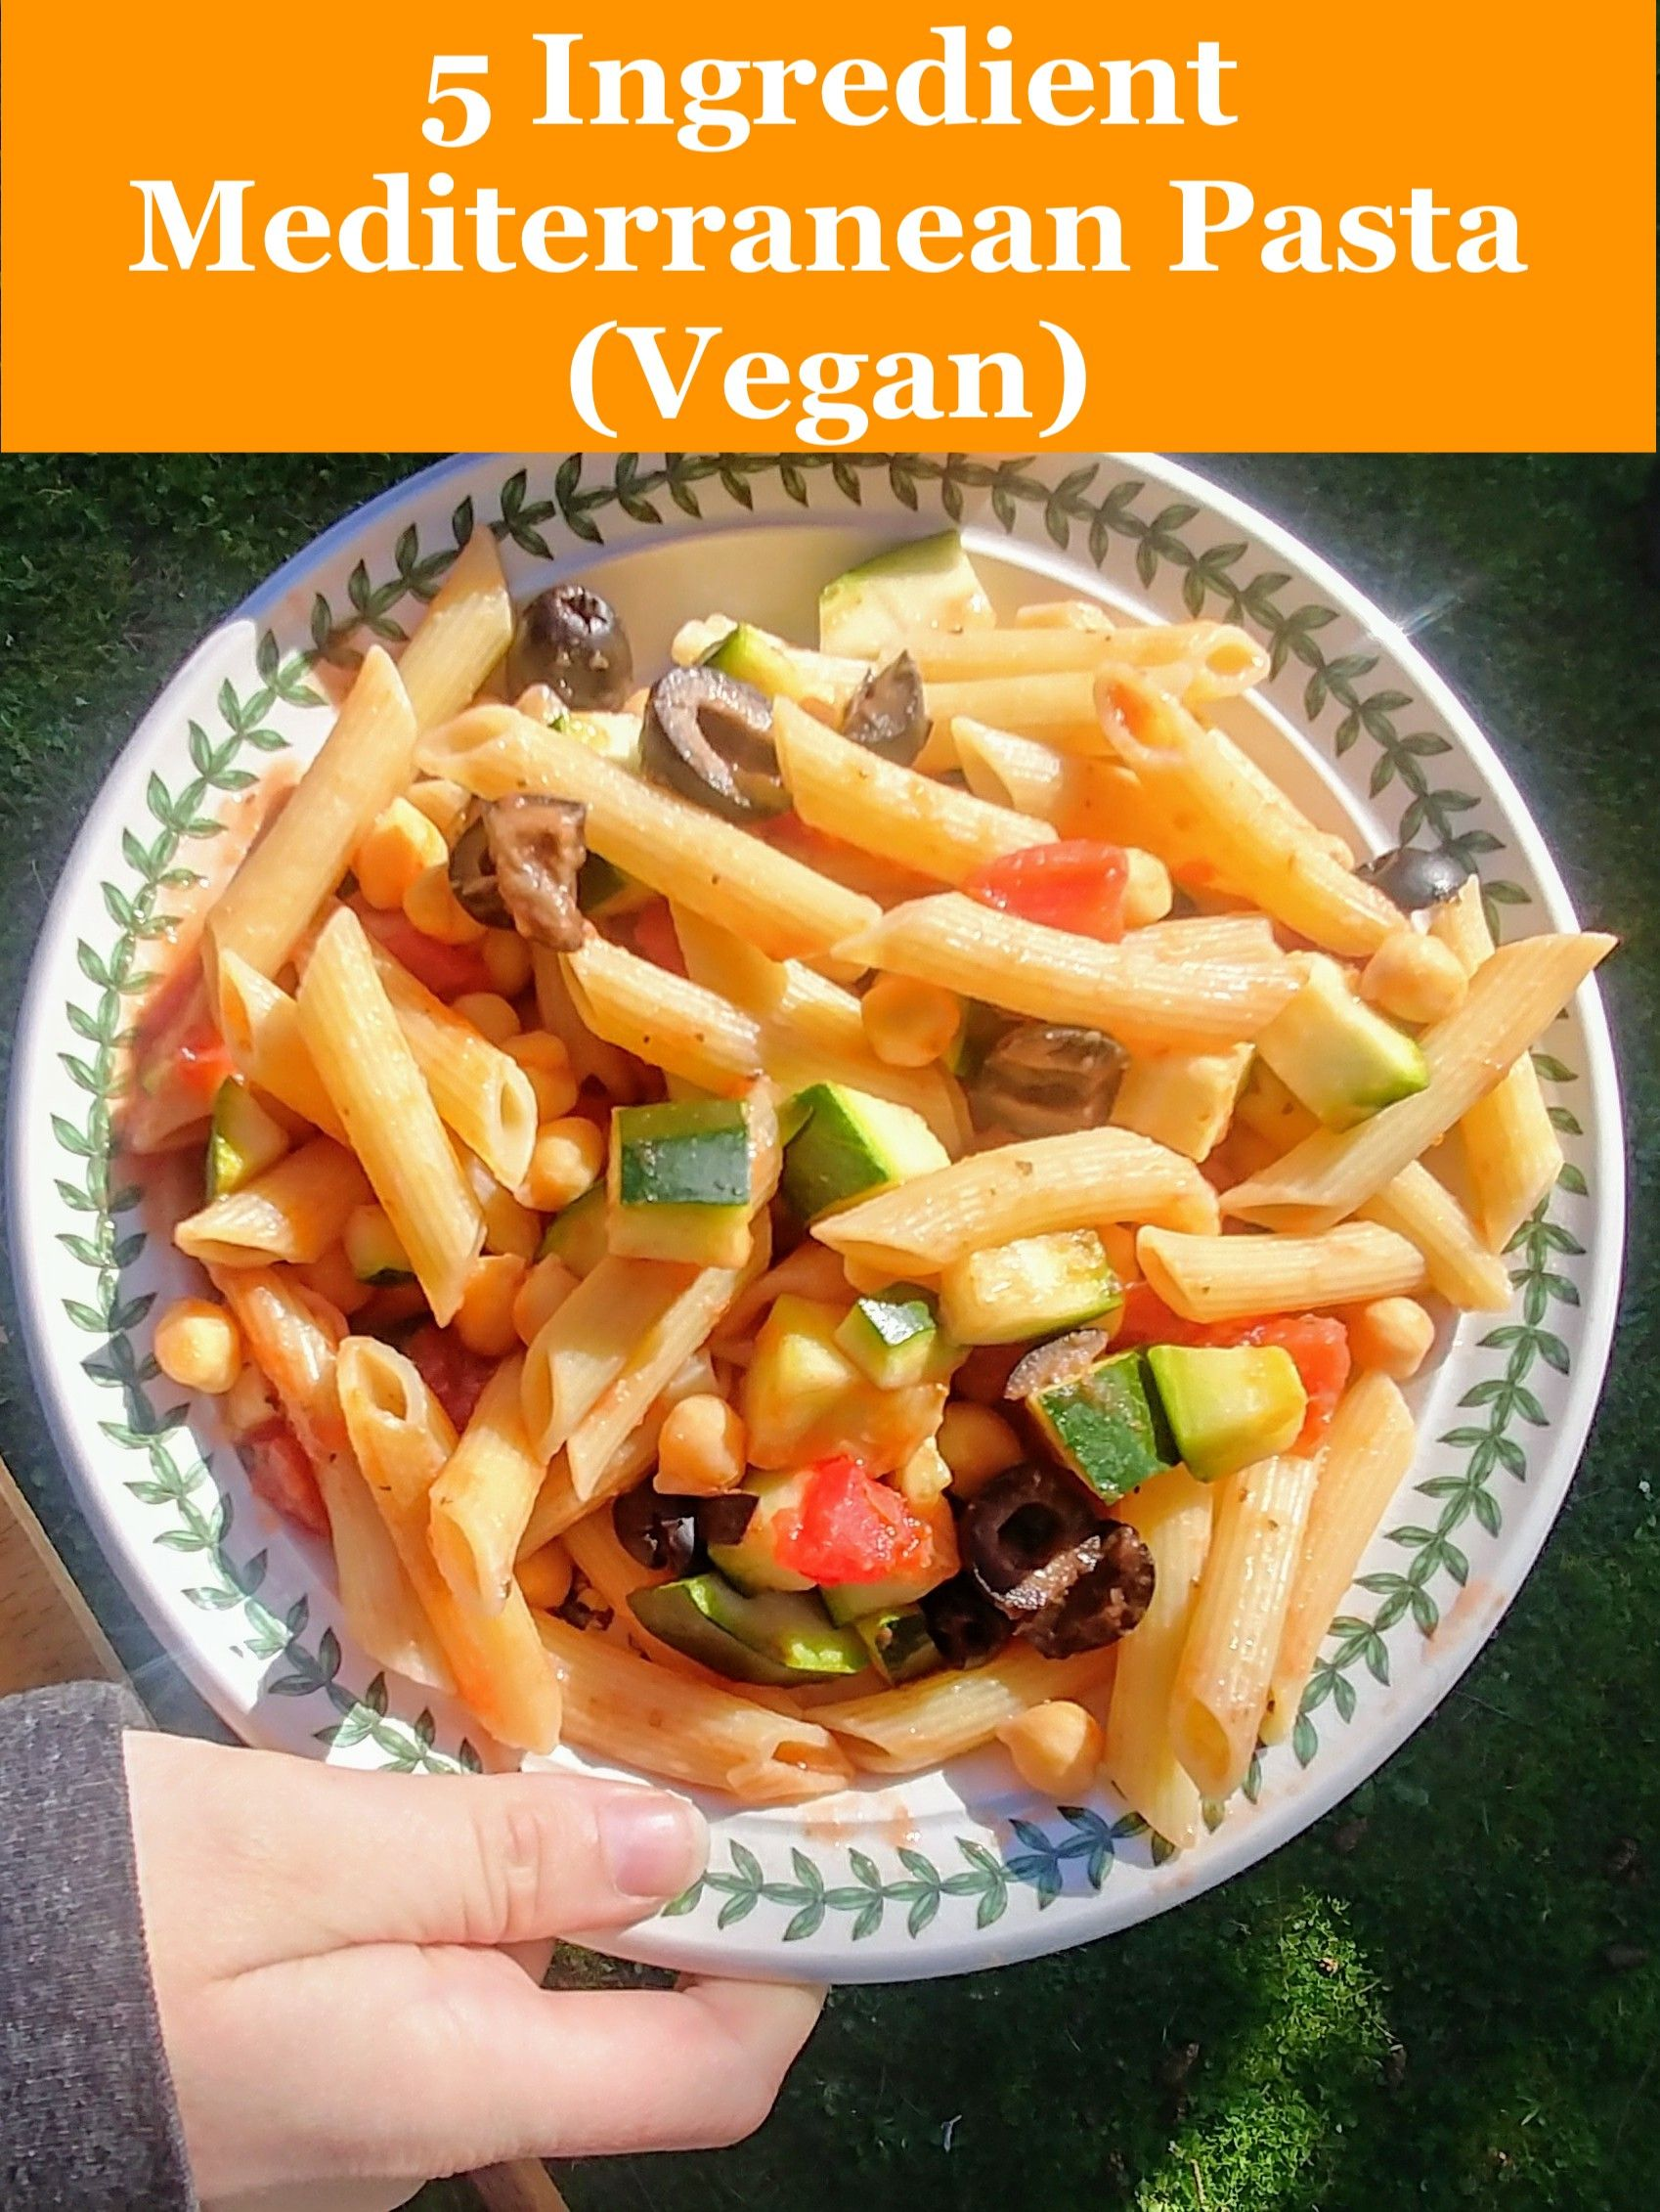 Super Easy Vegan Mediterranean Pasta 5 Ingredients